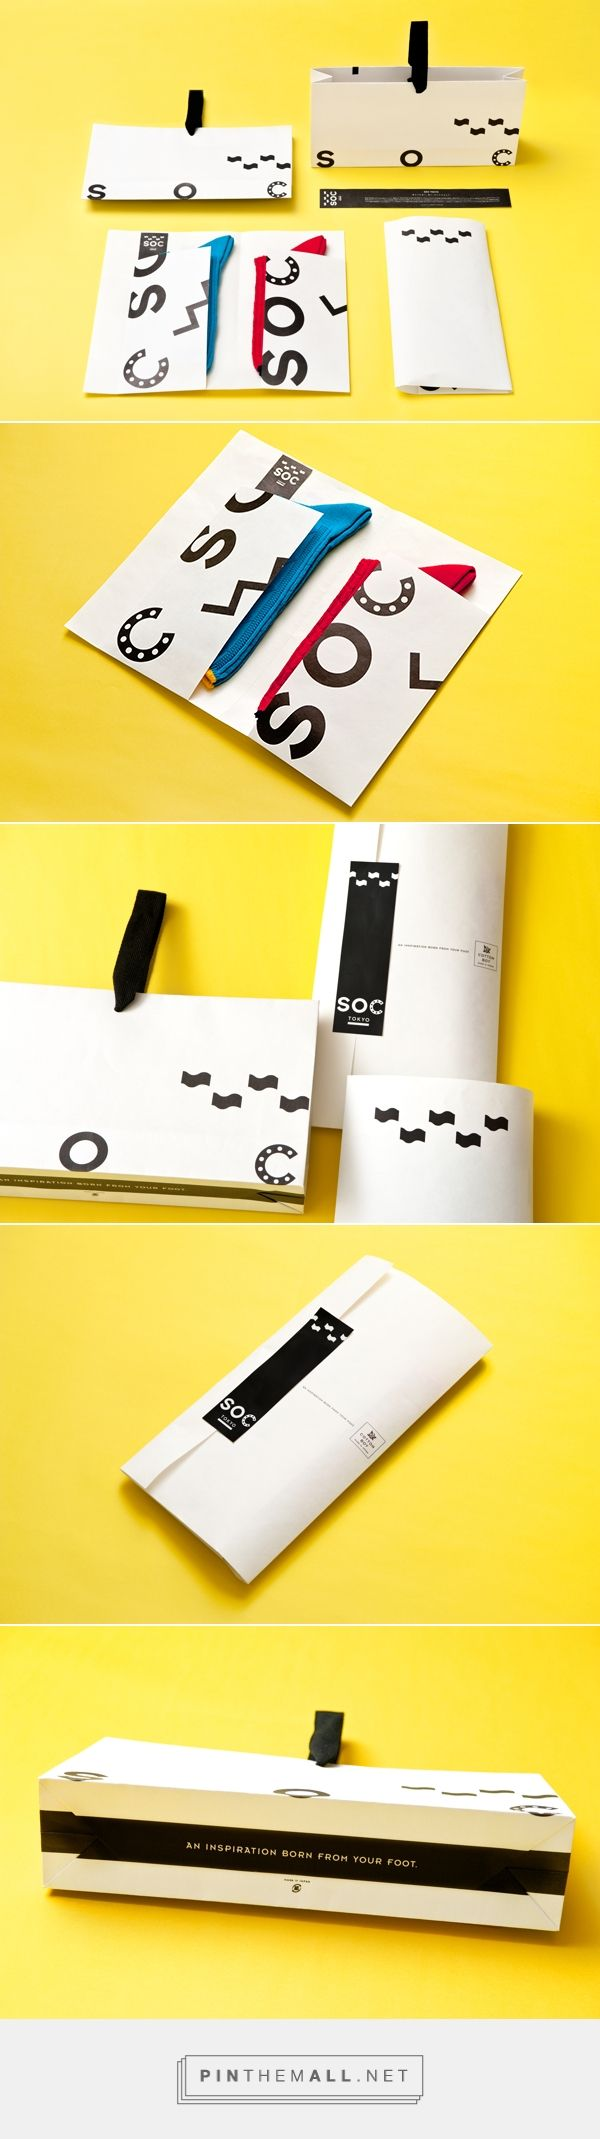 The package has been designed so that it is able to contain socks of all sizes and display the different styles, and was created according to the art of traditional Japanese folding, so that it may be opened without destroying the packaging.